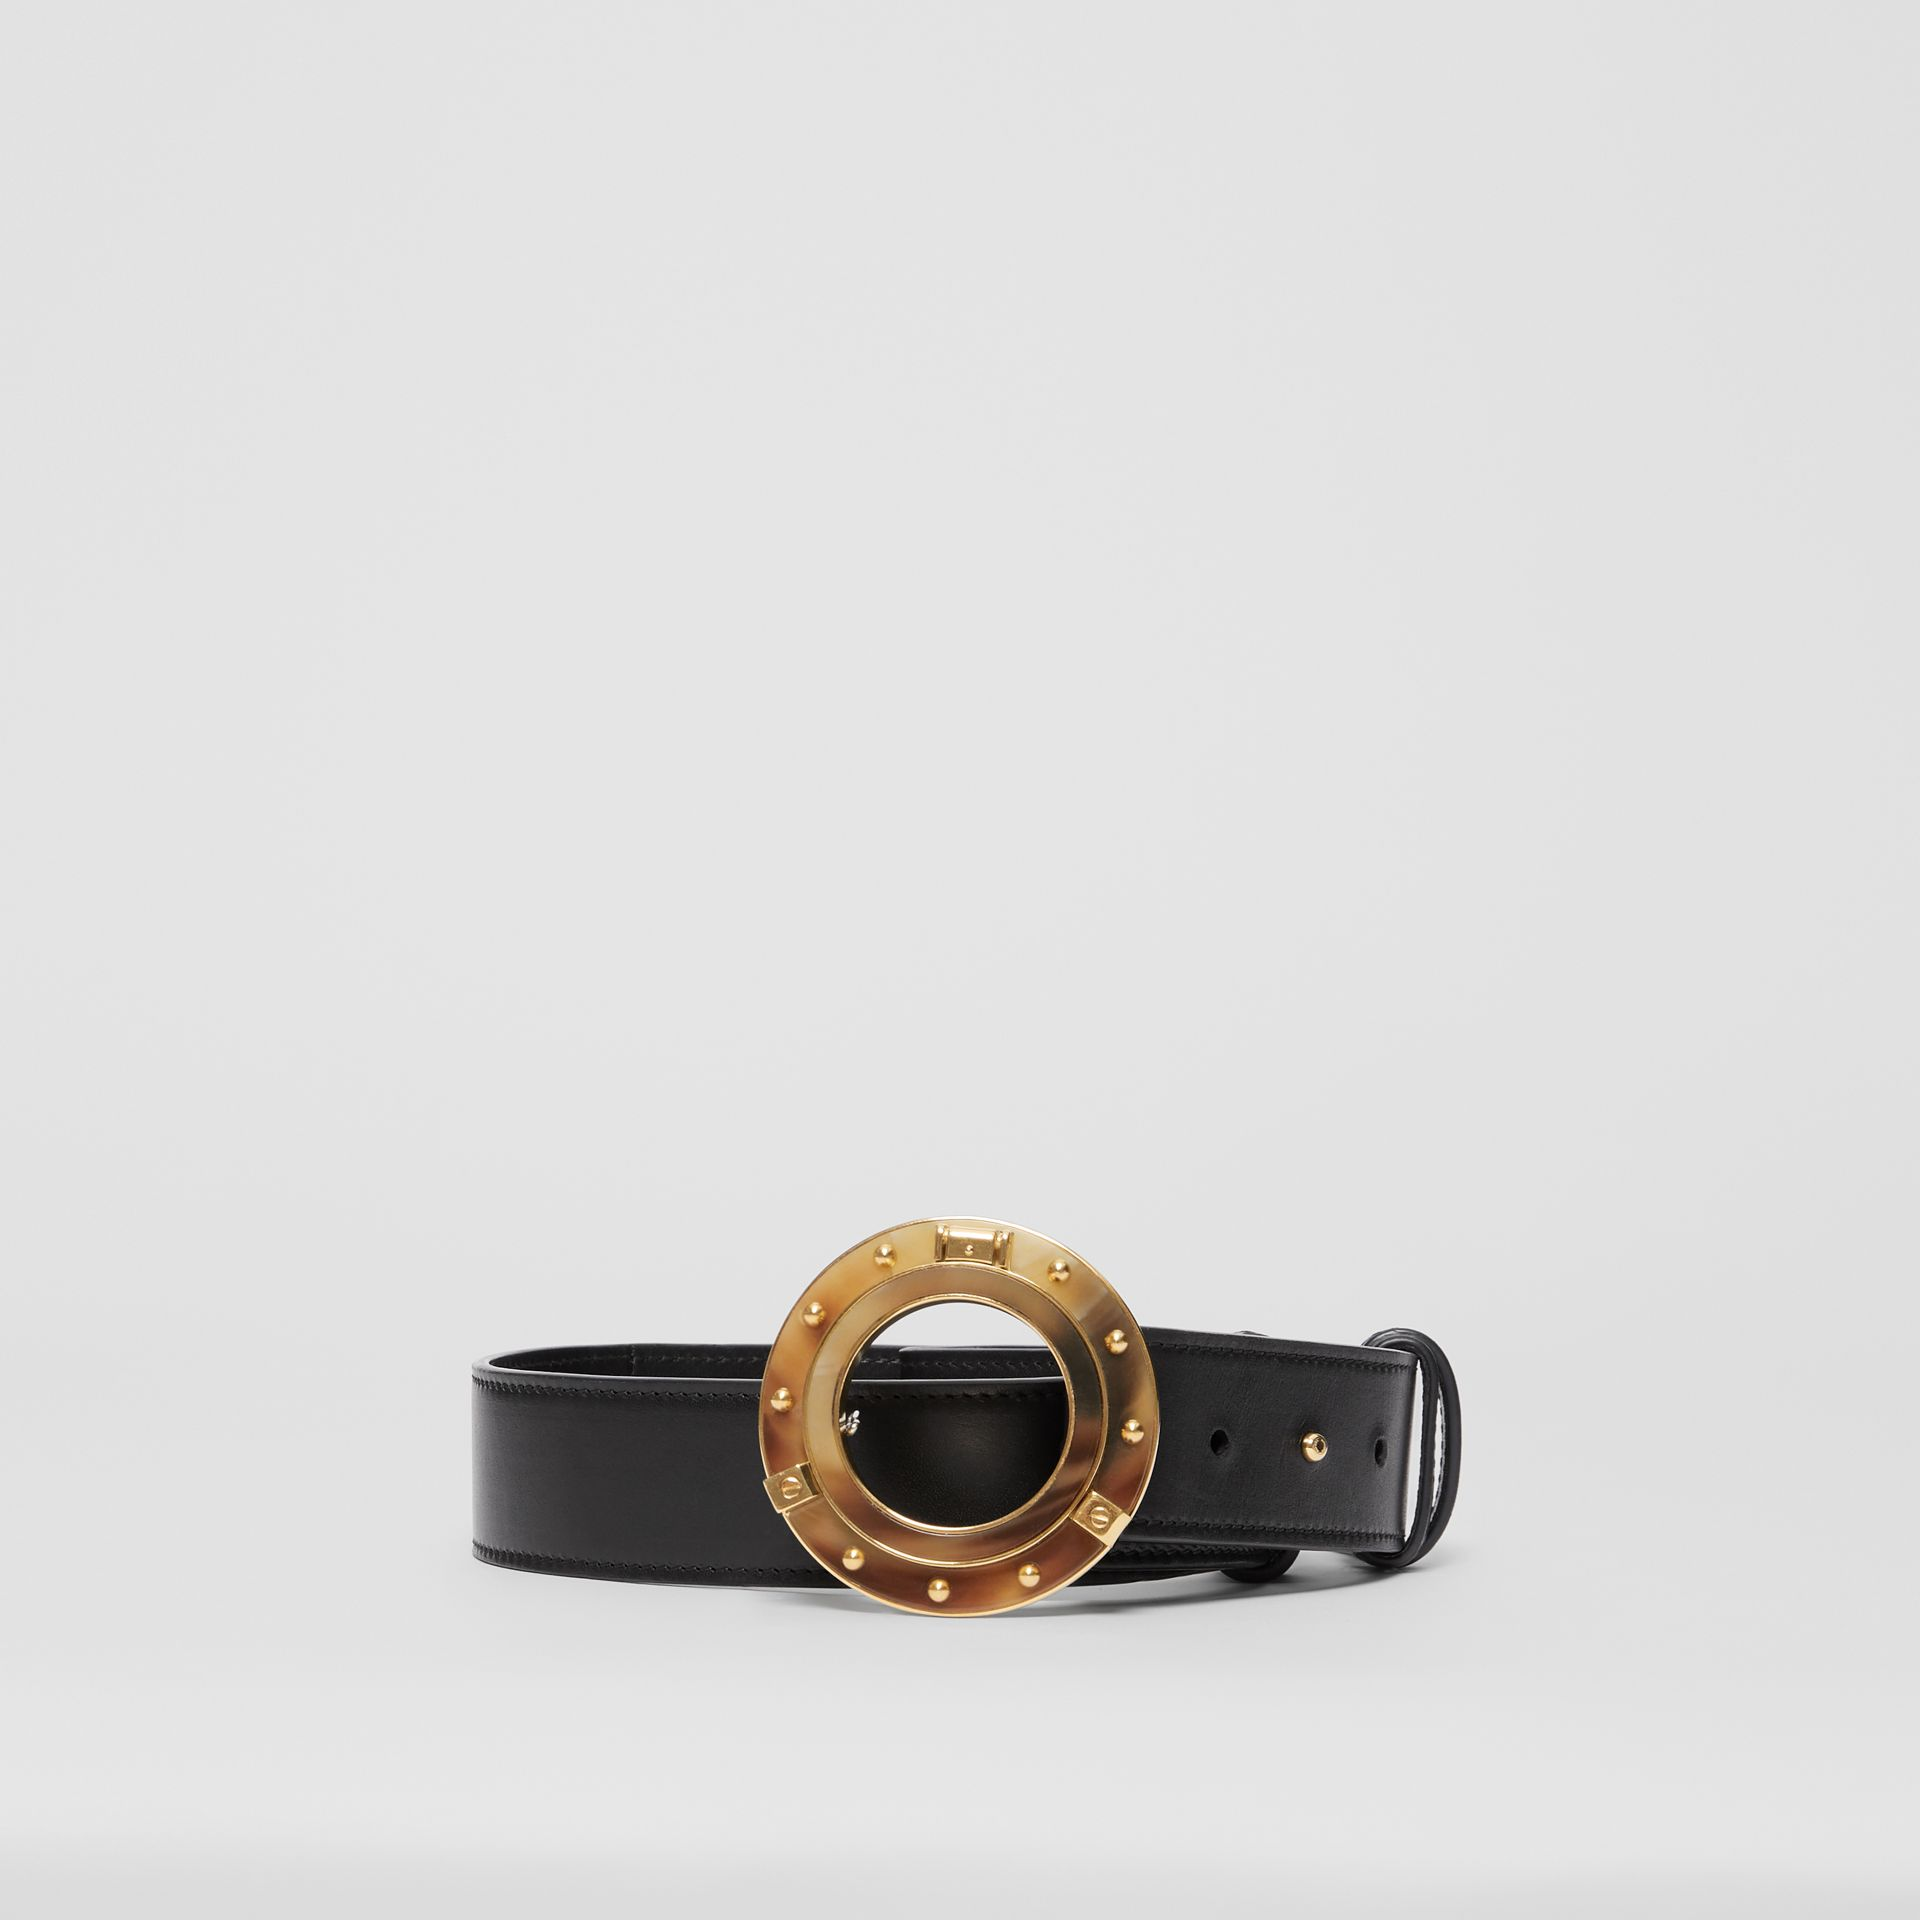 Porthole Buckle Leather Belt in Black - Women | Burberry - gallery image 3